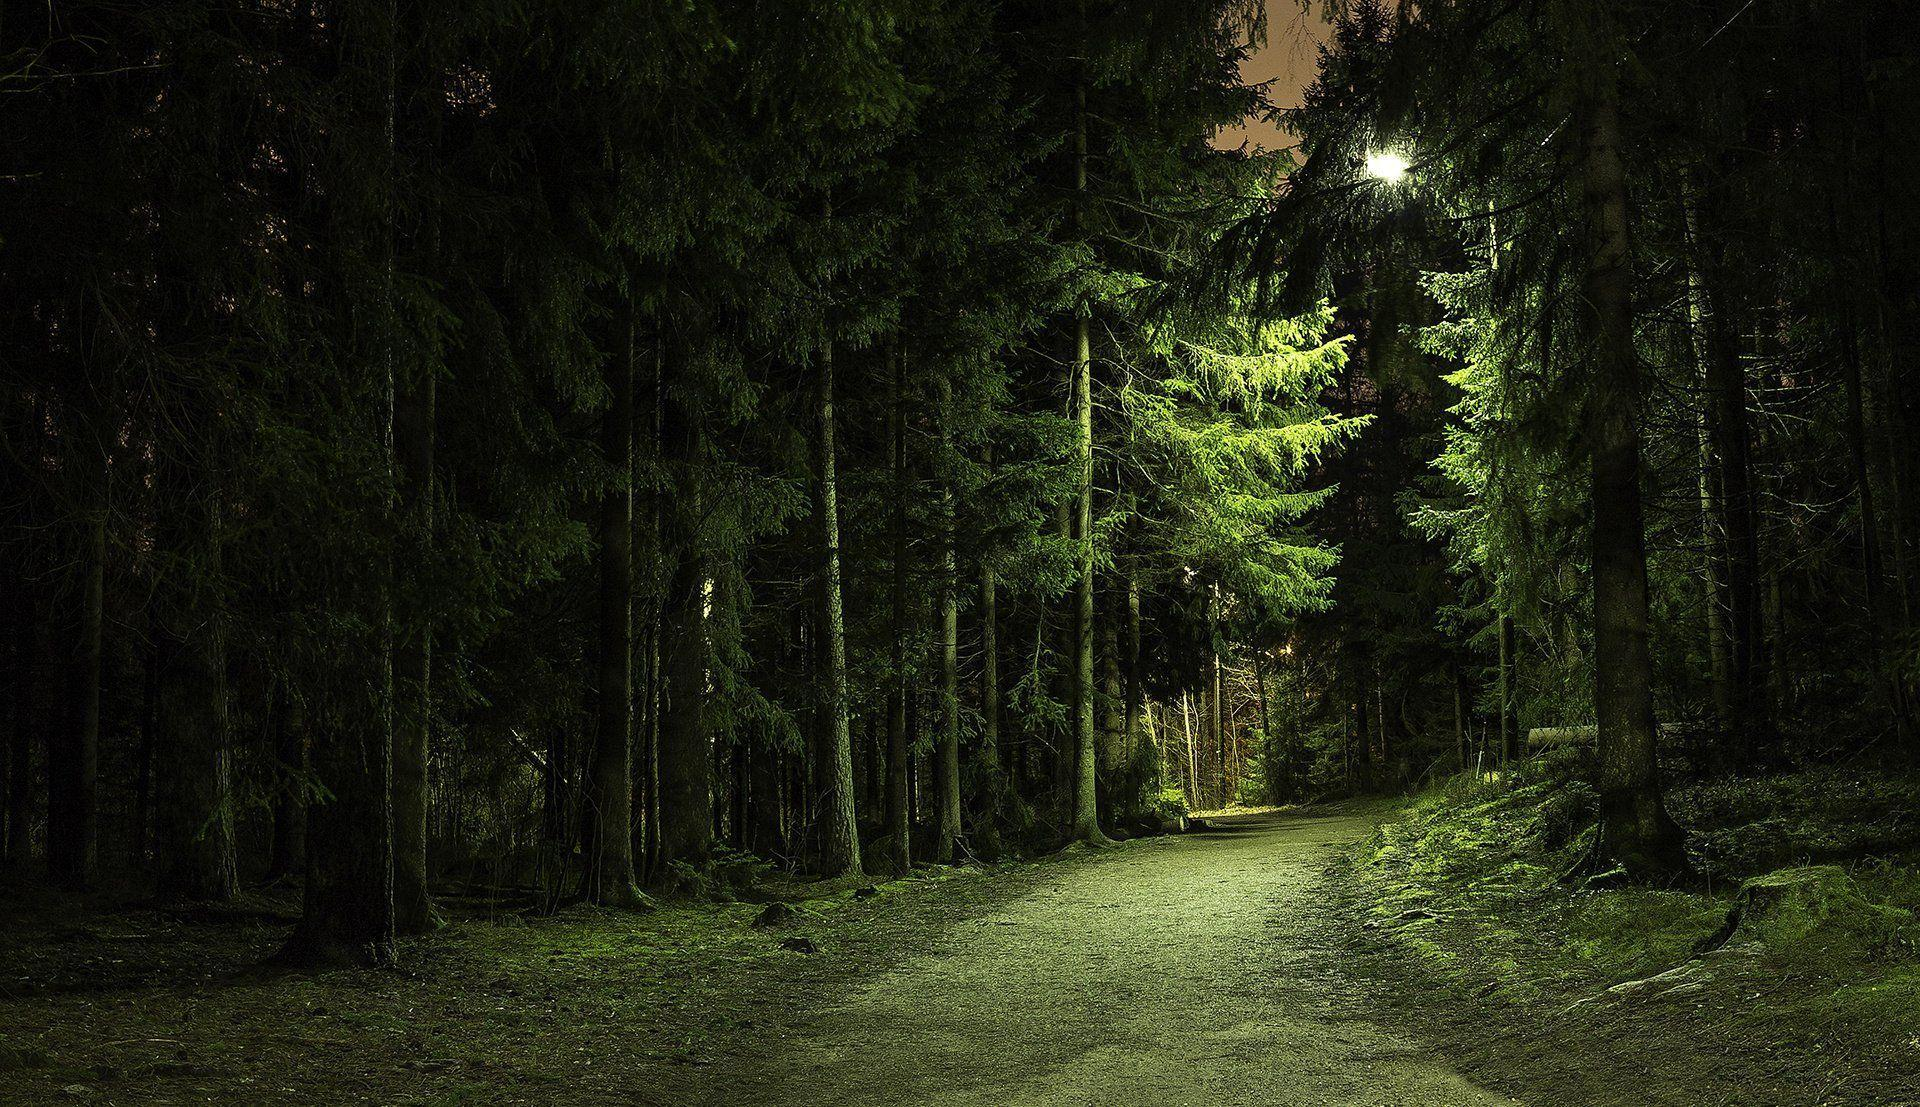 Night Forest Wallpapers - Wallpaper Cave